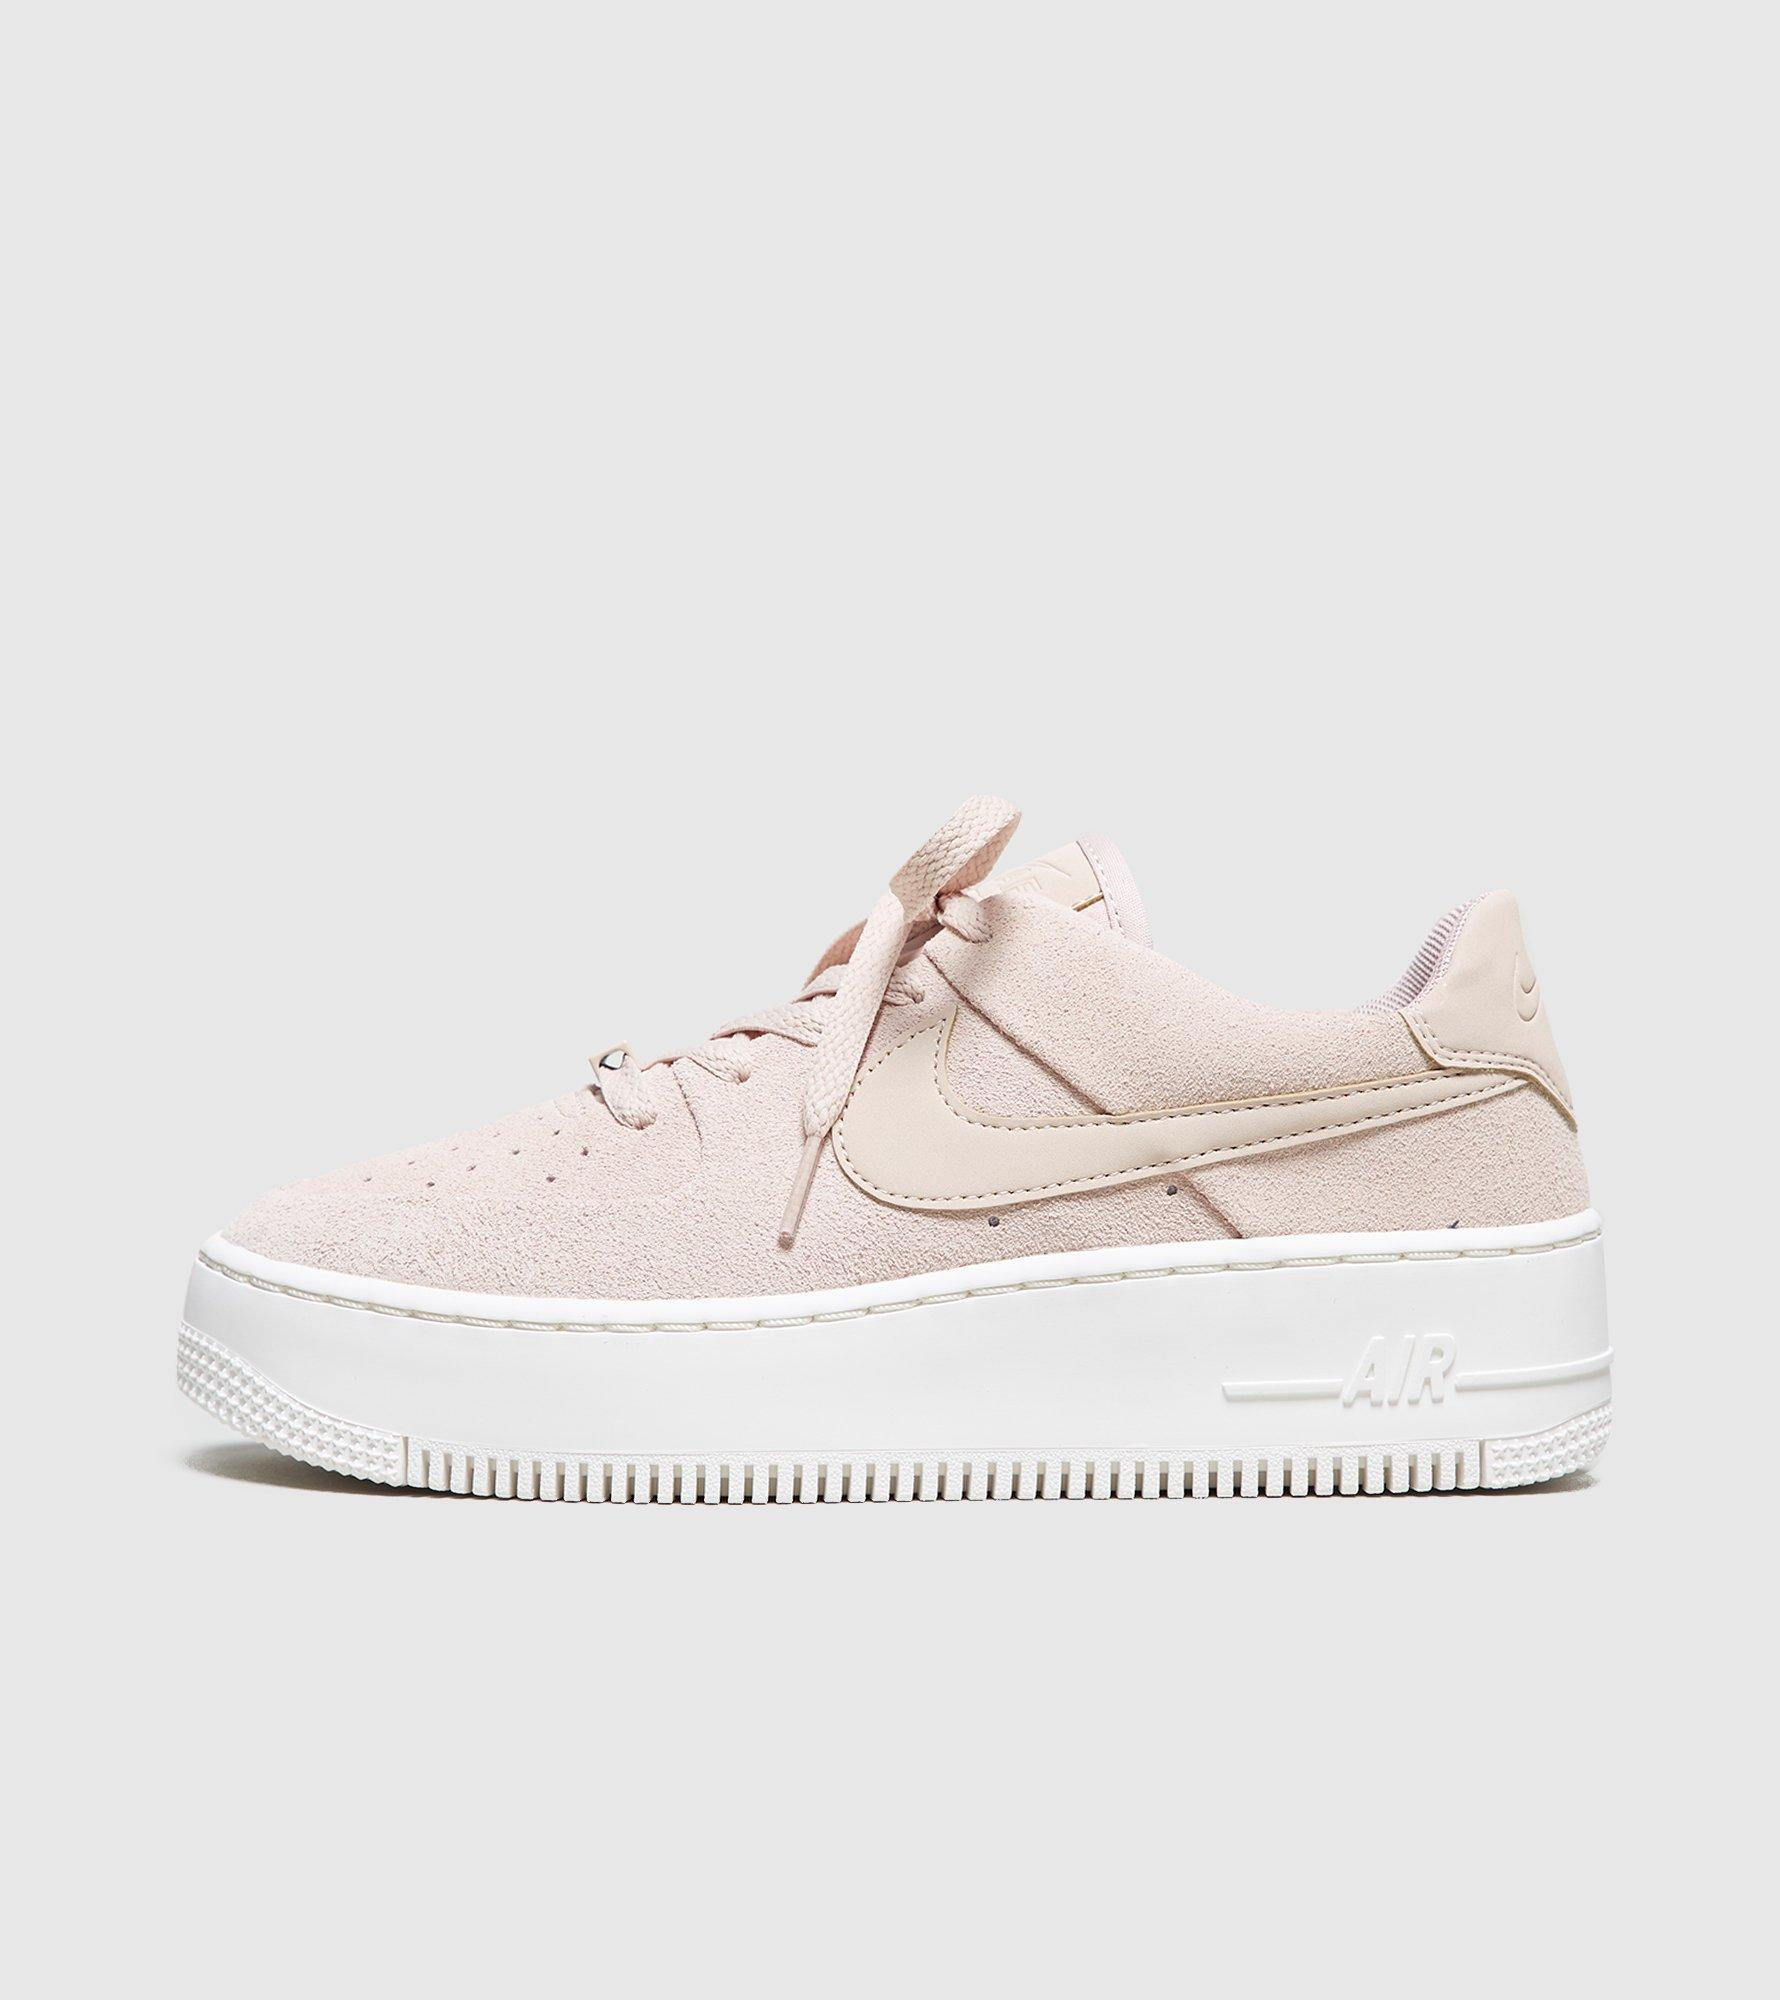 online retailer ceec7 39fb4 Lyst - Nike Air Force 1 Sage Low Womens in Natural